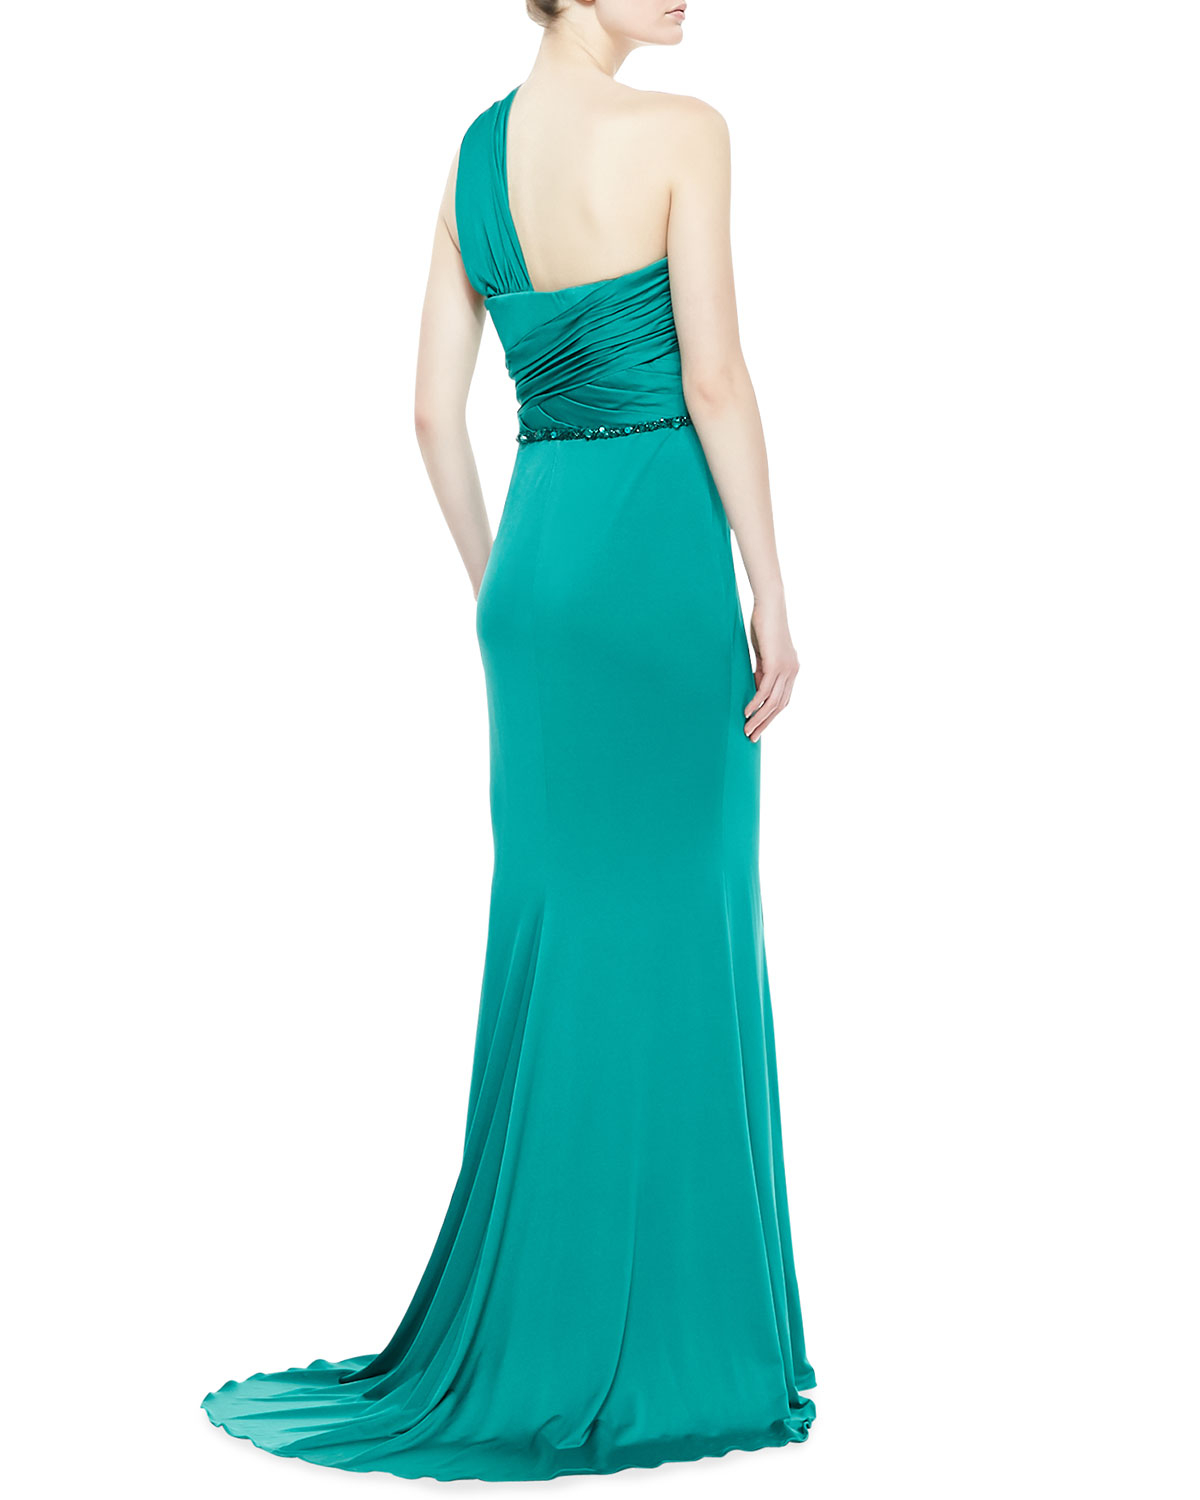 2c281d3fcd7 Badgley Mischka One-shoulder Draped Gown in Blue - Lyst